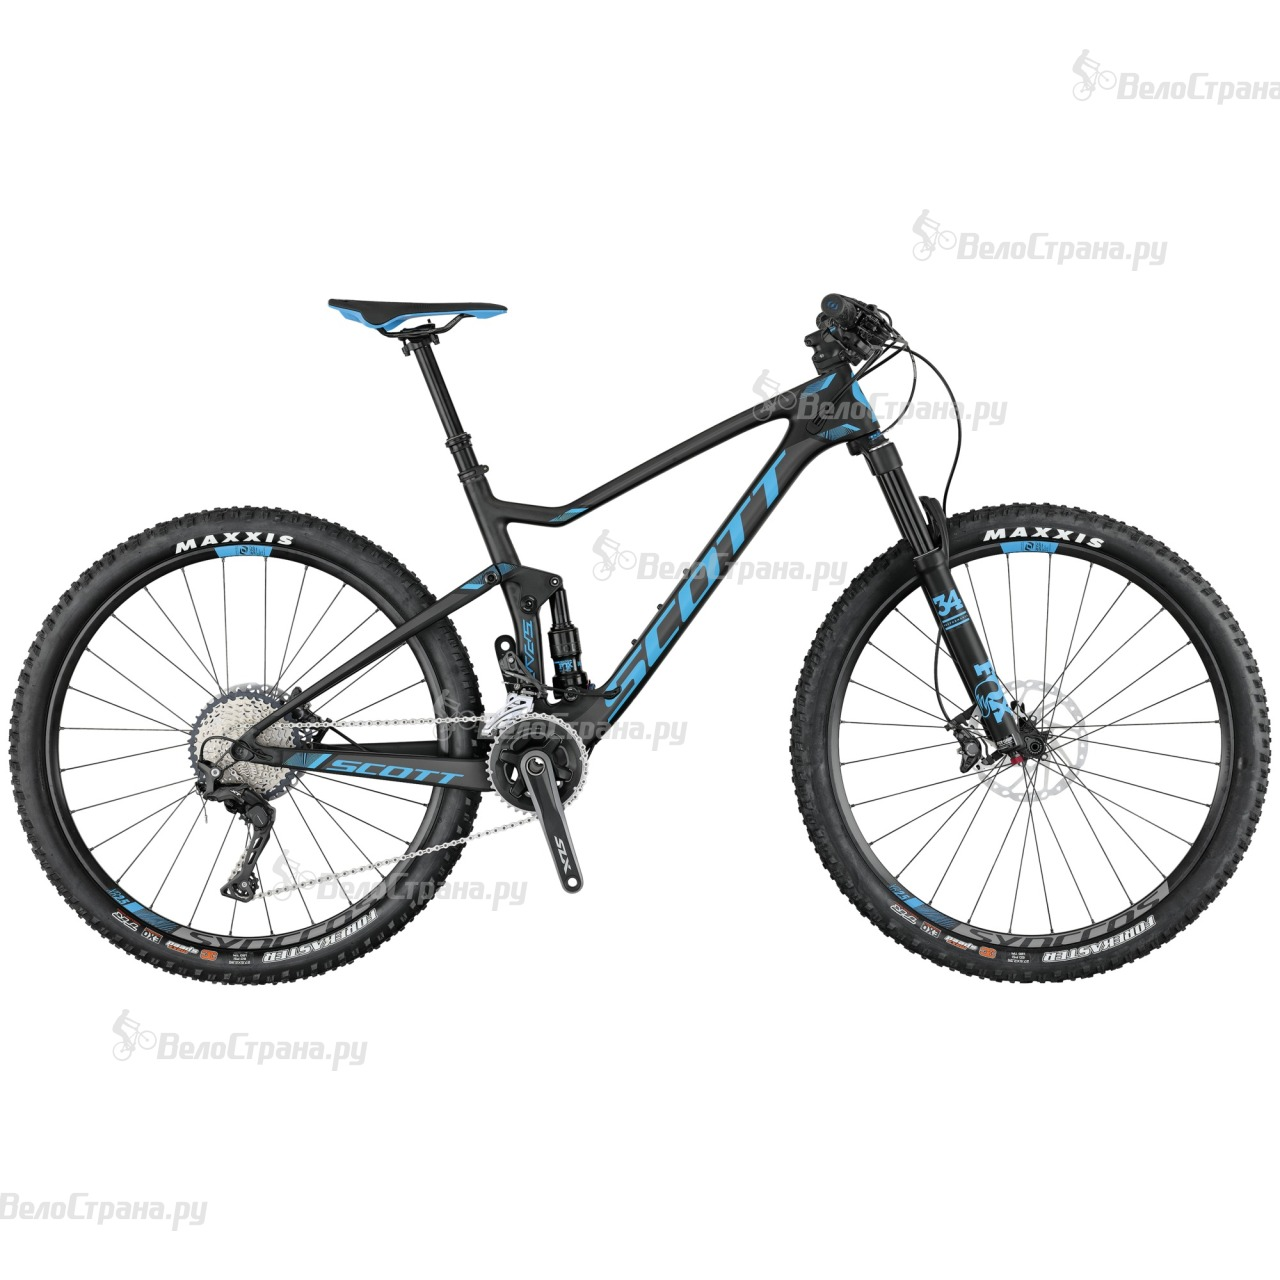 Велосипед Scott Contessa Spark 710 (2017) велосипед scott contessa 710 27 5 2016